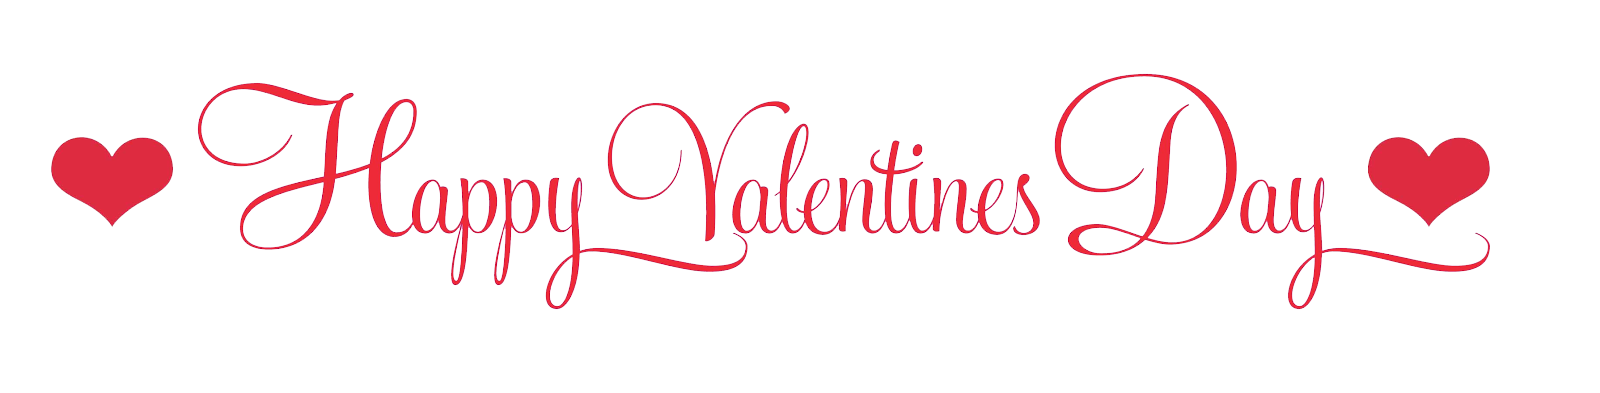 Clip Arts Related To : Happy Valentineu0027s Day PNG HD - Valentine PNG HD